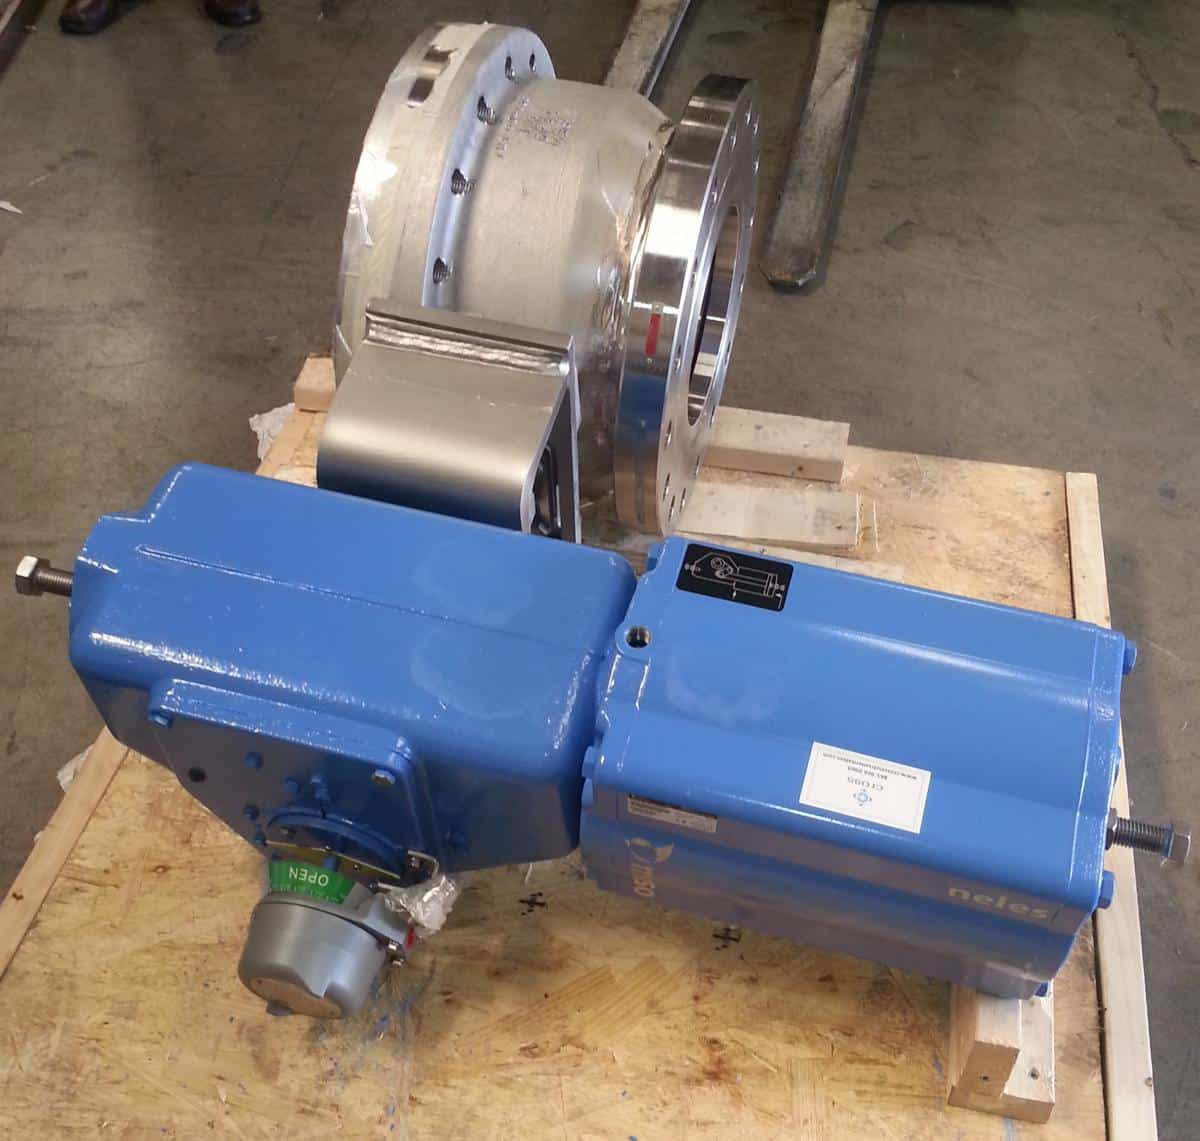 Metso Pneumatic Actuator Attached To A Valve